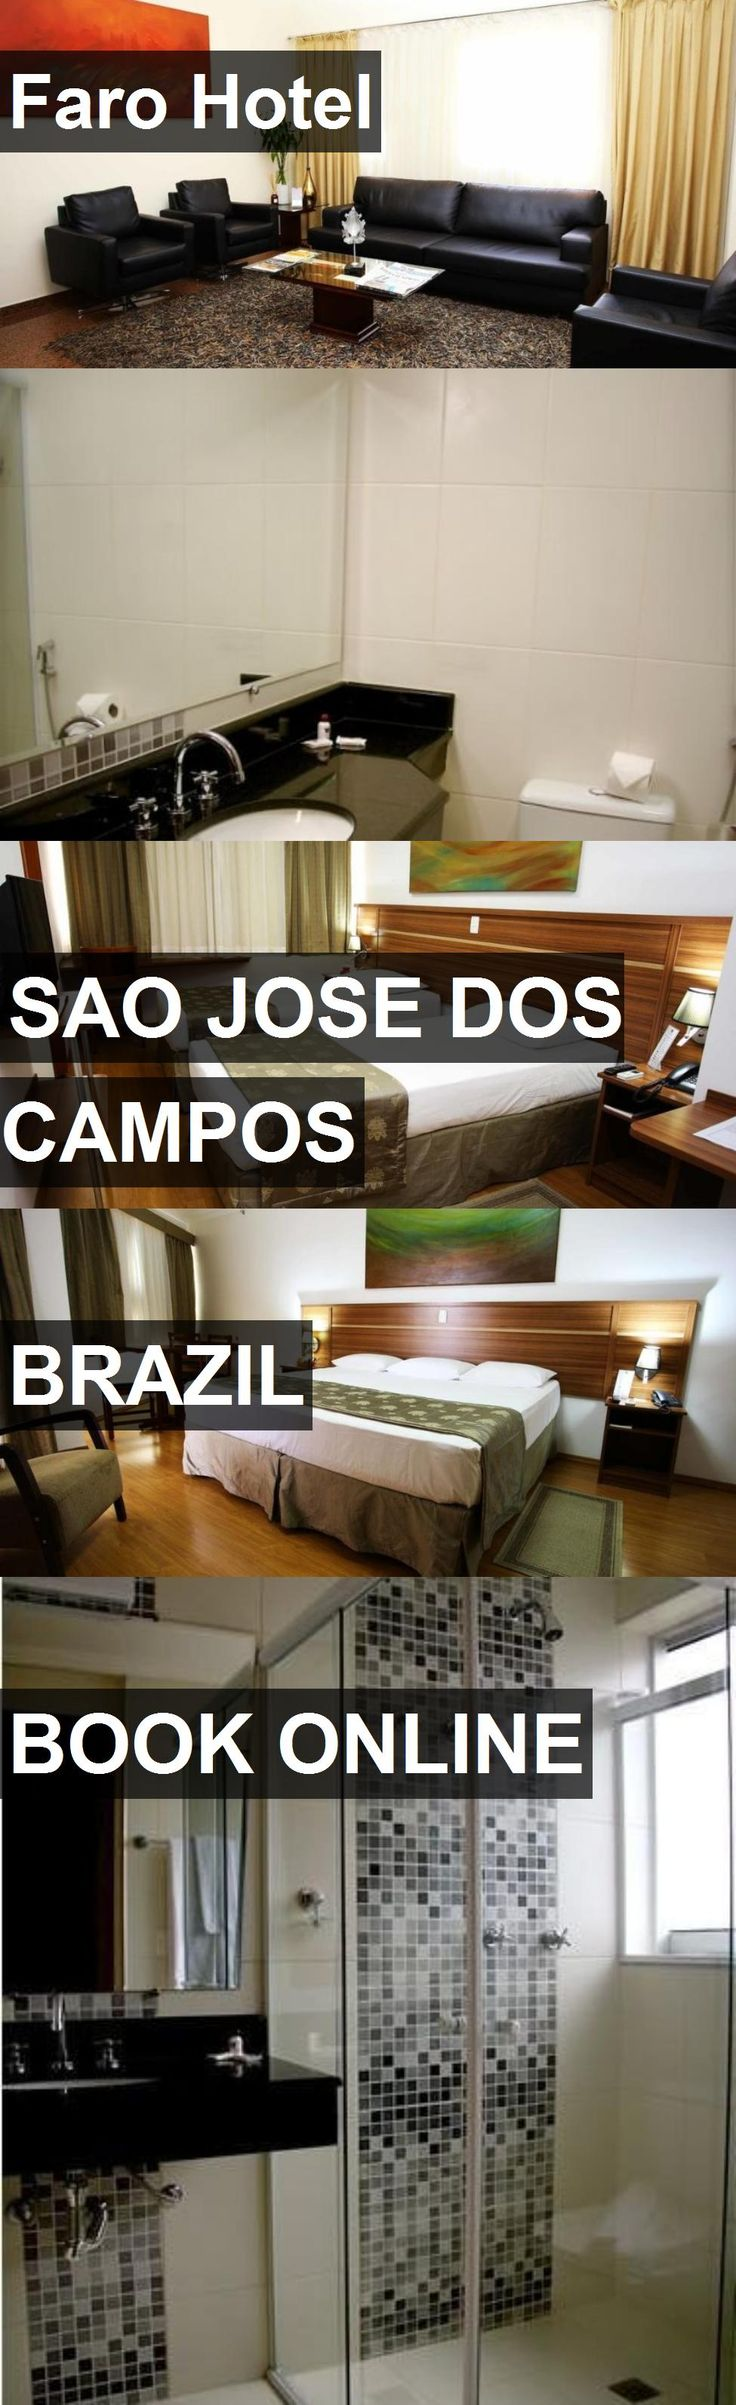 Faro Hotel in SAO JOSE DOS CAMPOS, Brazil. For more information, photos, reviews and best prices please follow the link. #Brazil #SAOJOSEDOSCAMPOS #travel #vacation #hotel